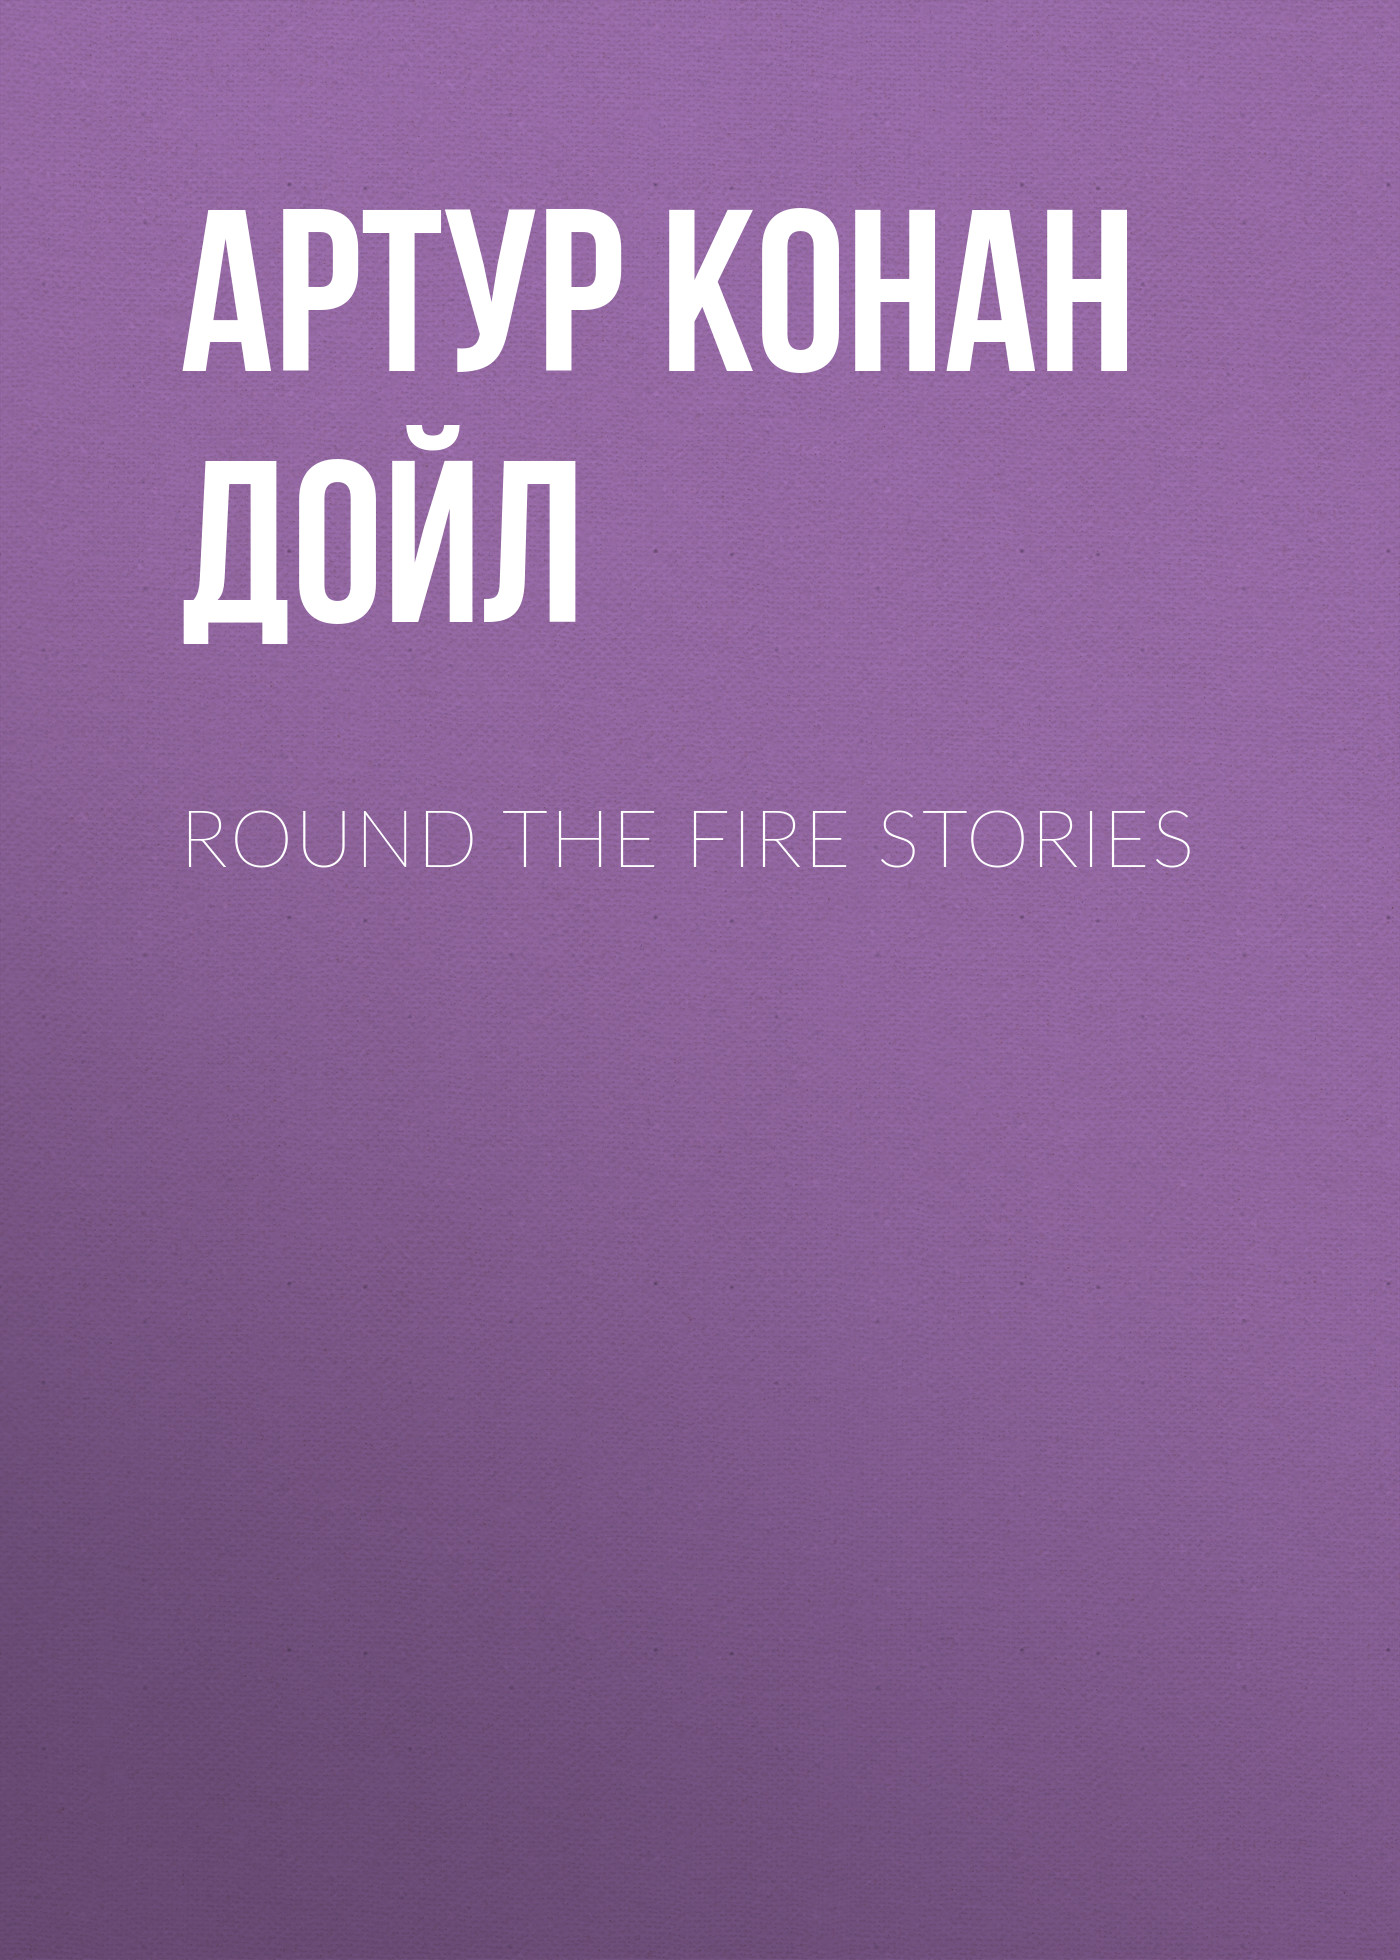 Артур Конан Дойл Round the Fire Stories артур конан дойл the firm of girdlestone